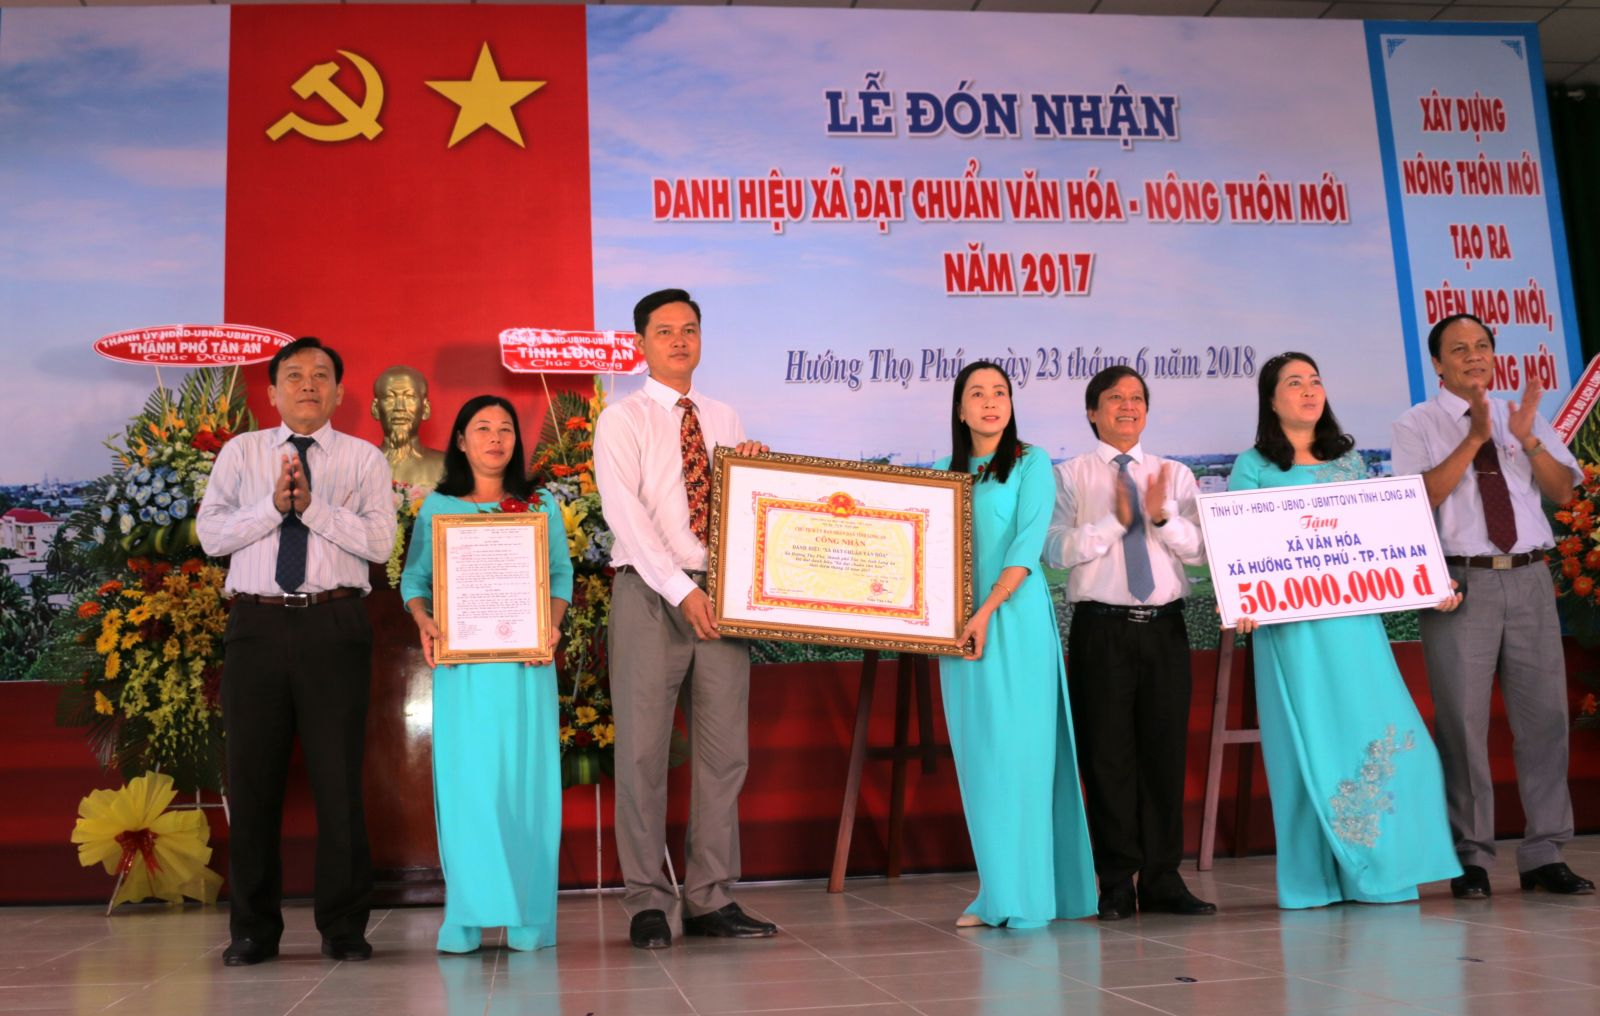 Tan An city completed the new-style rural construction program, contributing to meeting the targets set by the city Congress Resolution (Photo: Huong Tho Phu commune receives the title of the cultural and new-style rural commune).